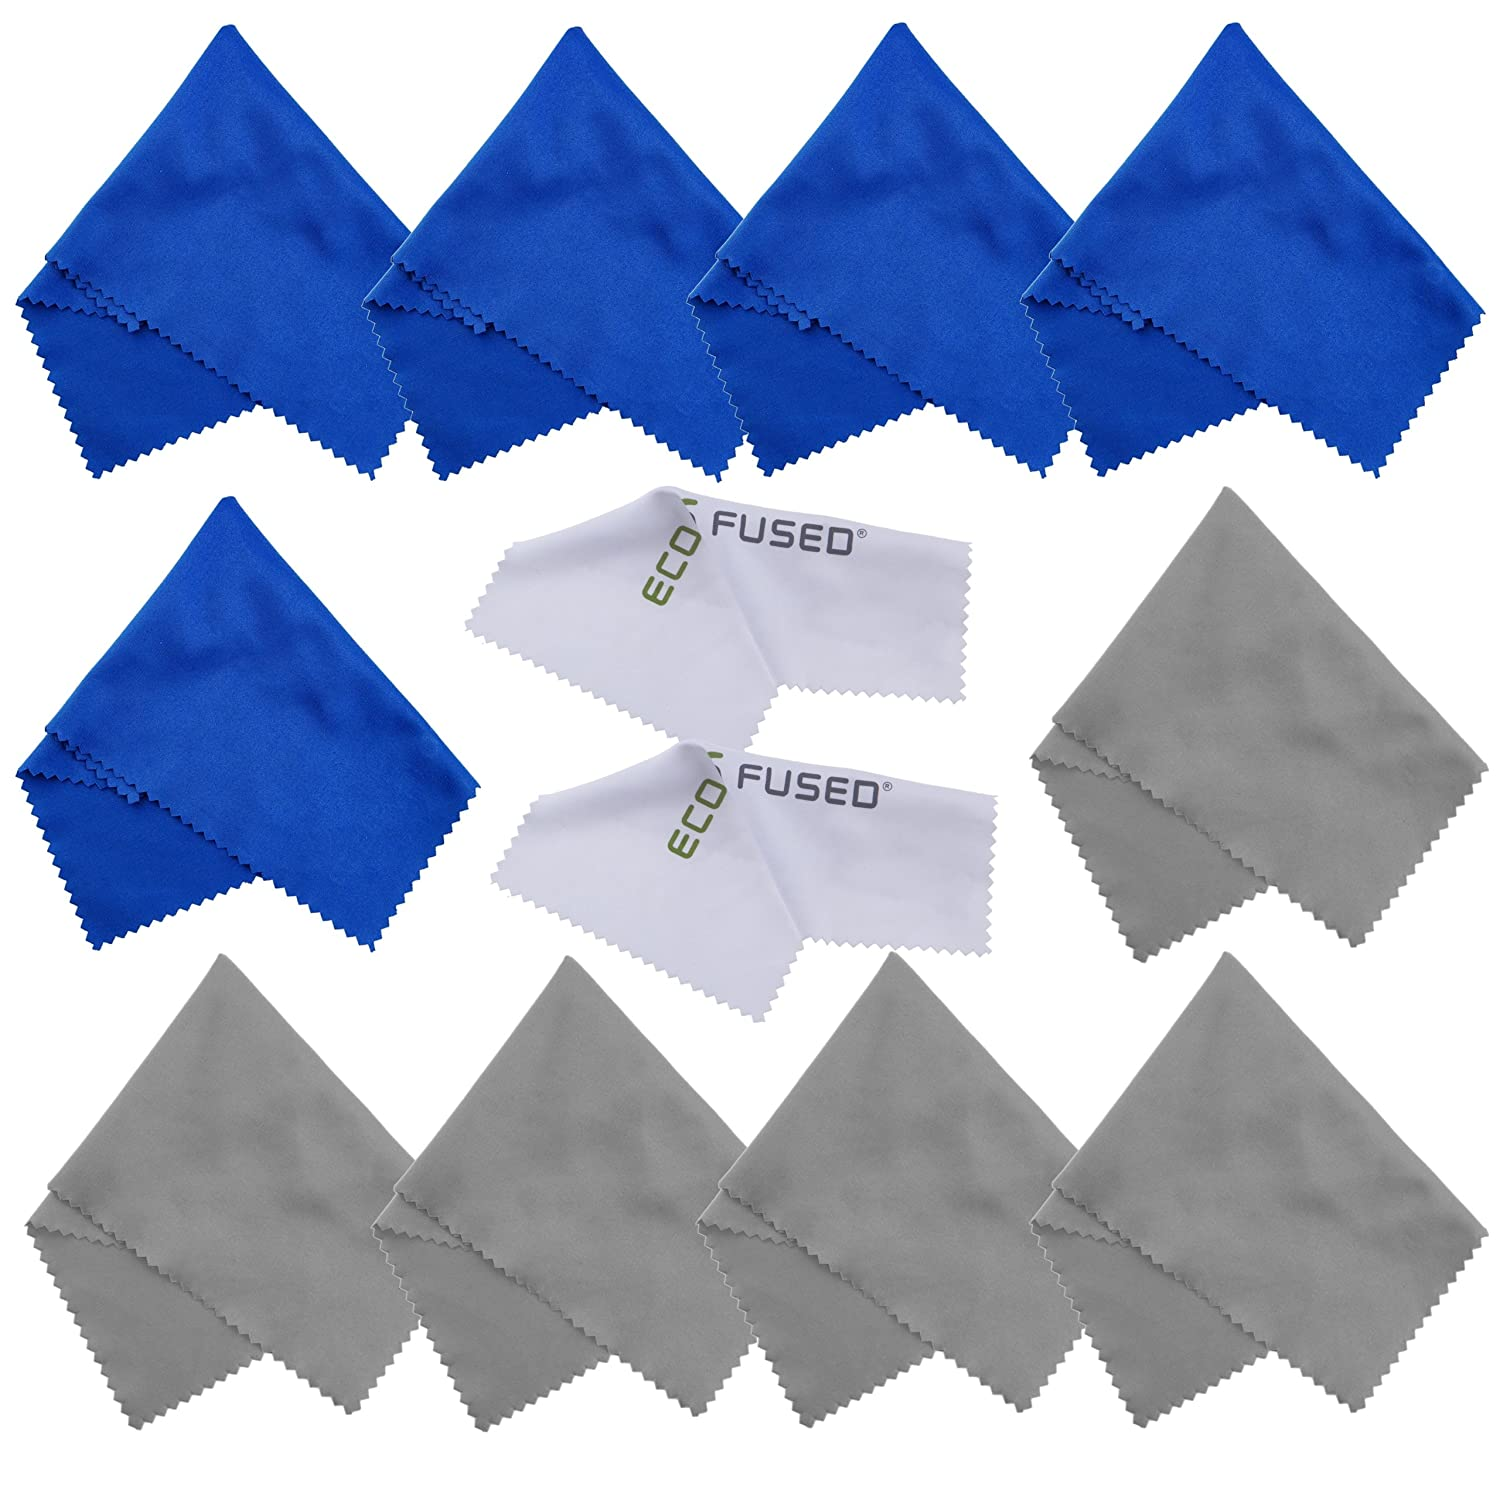 Microfiber Cleaning Cloths - 10 Cloths and 2 White Cloths - Ideal for Cleaning Glasses, Camera Lenses, iPad, Tablets, Phones, iPhone, Android Phones, LCD Screens and Other Delicate Surfaces Eco-Fused P2JGQ-MCC-12PC